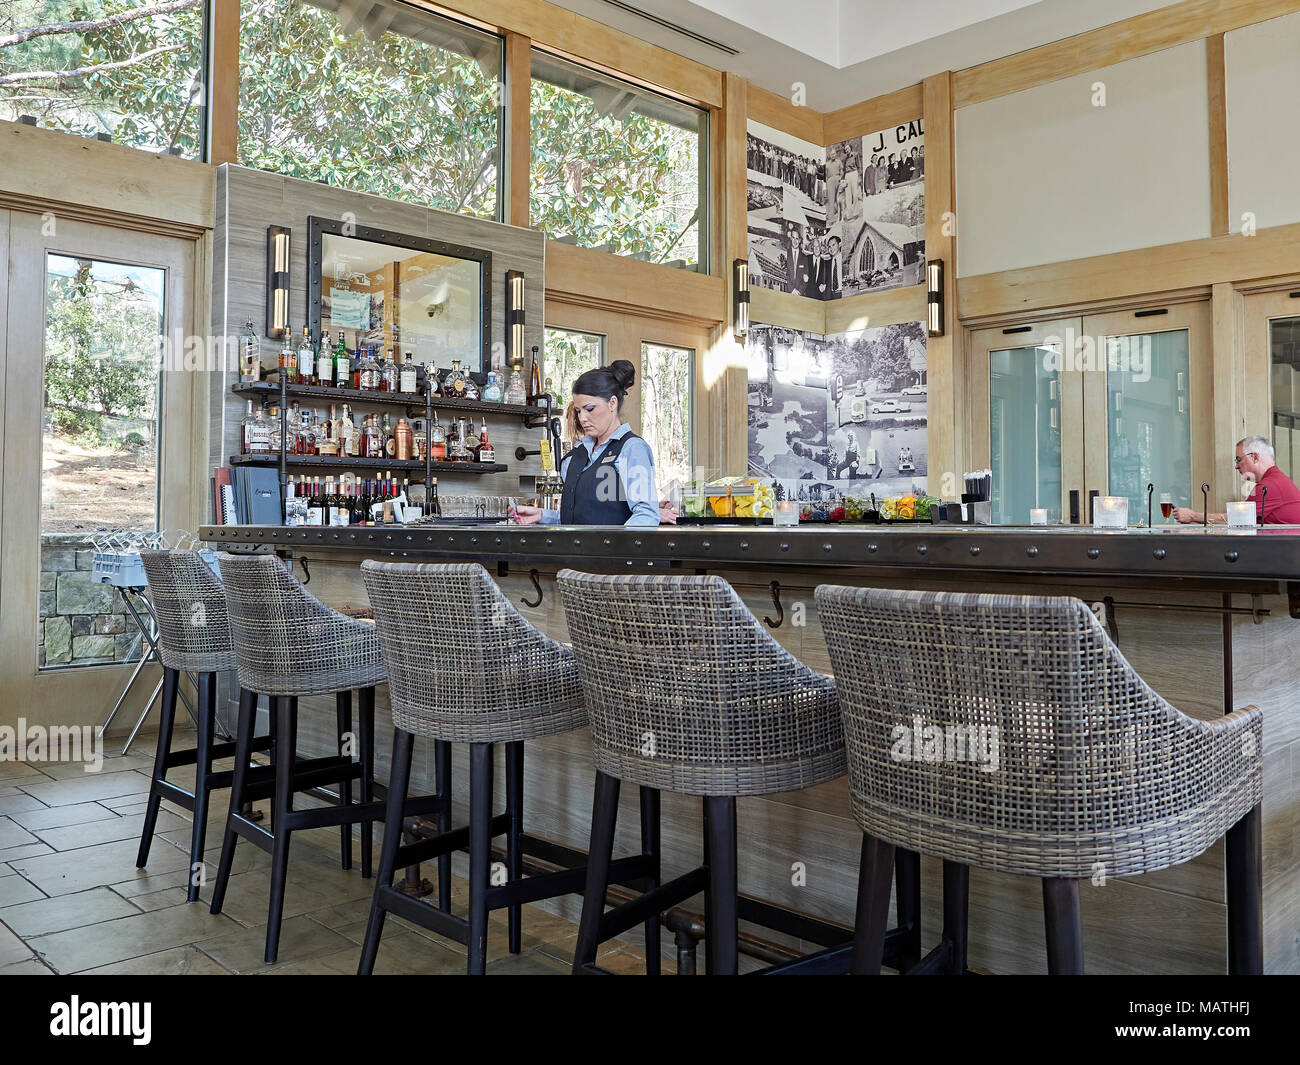 Empty bar stools with a female, or woman bartender standing behind the bar during the daytime. - Stock Image